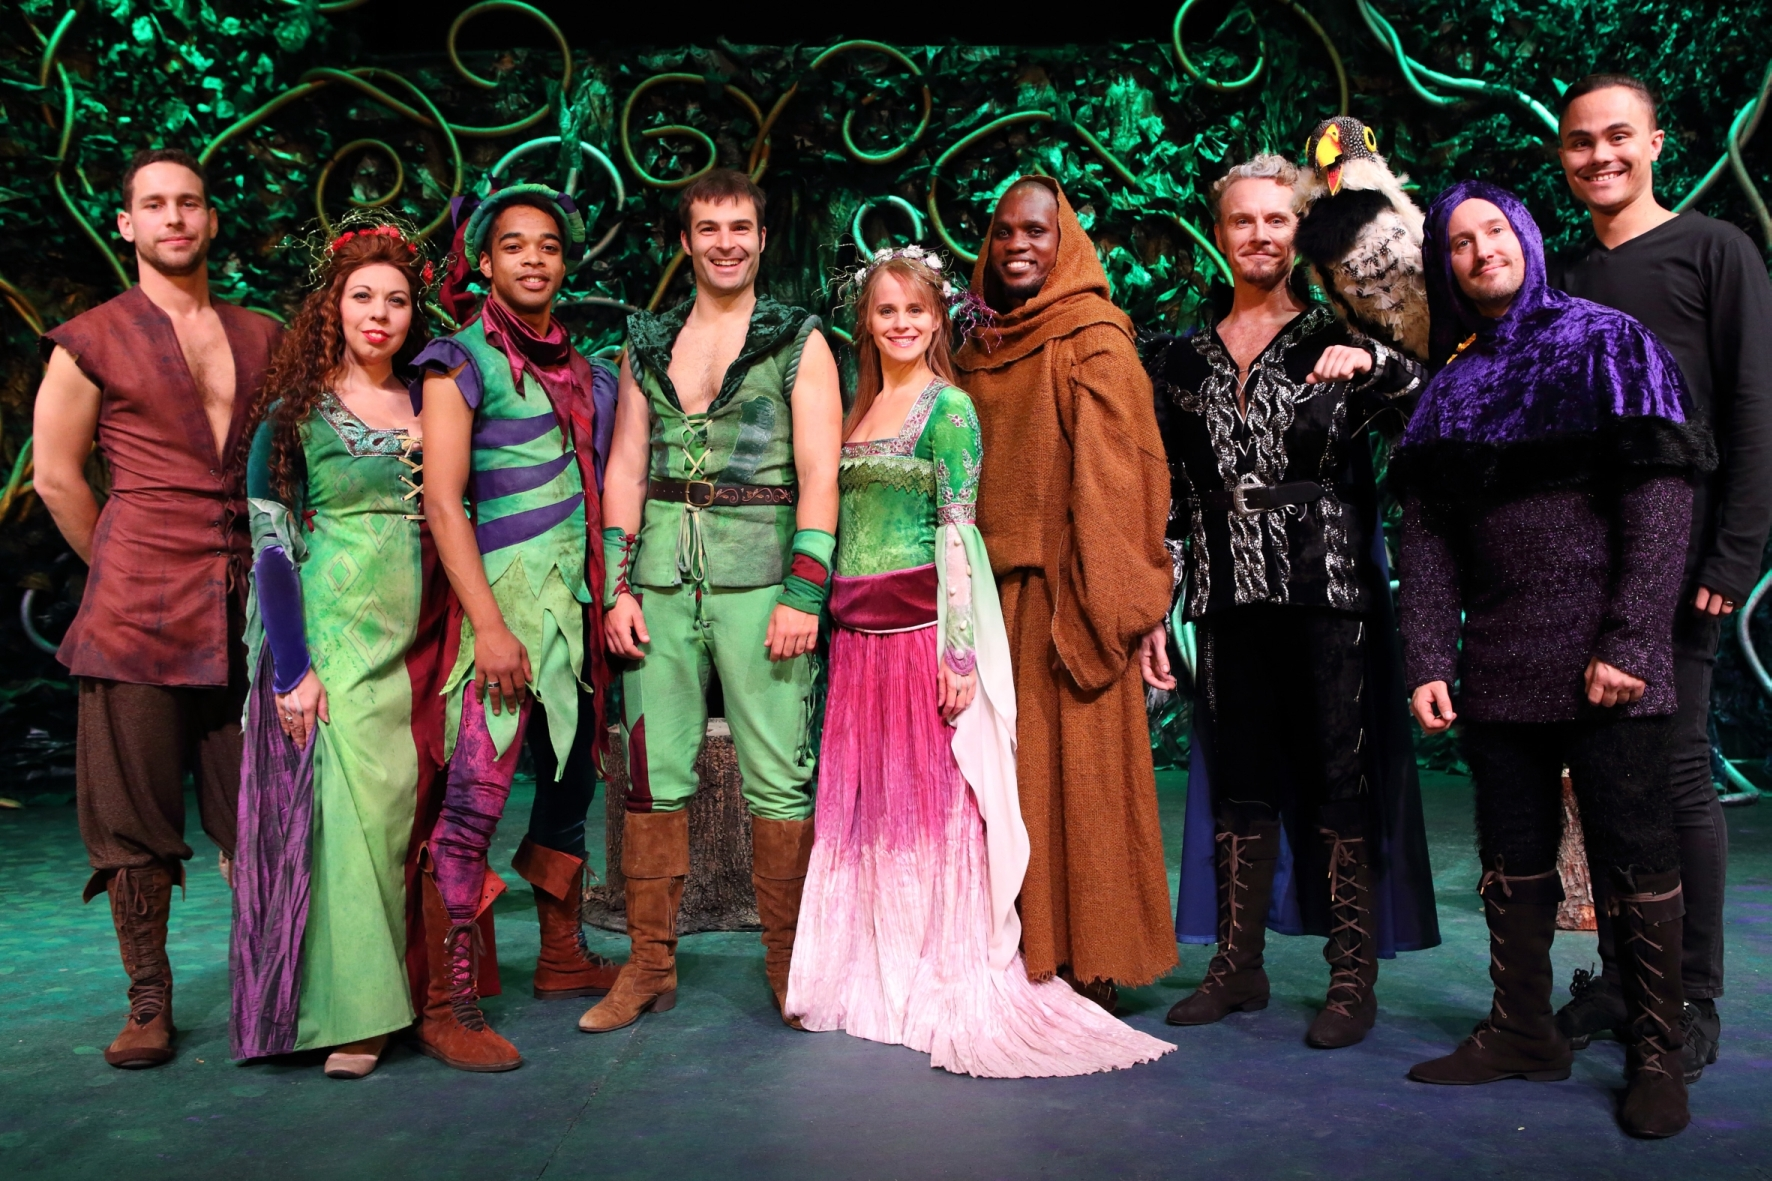 cast of Robin Hood